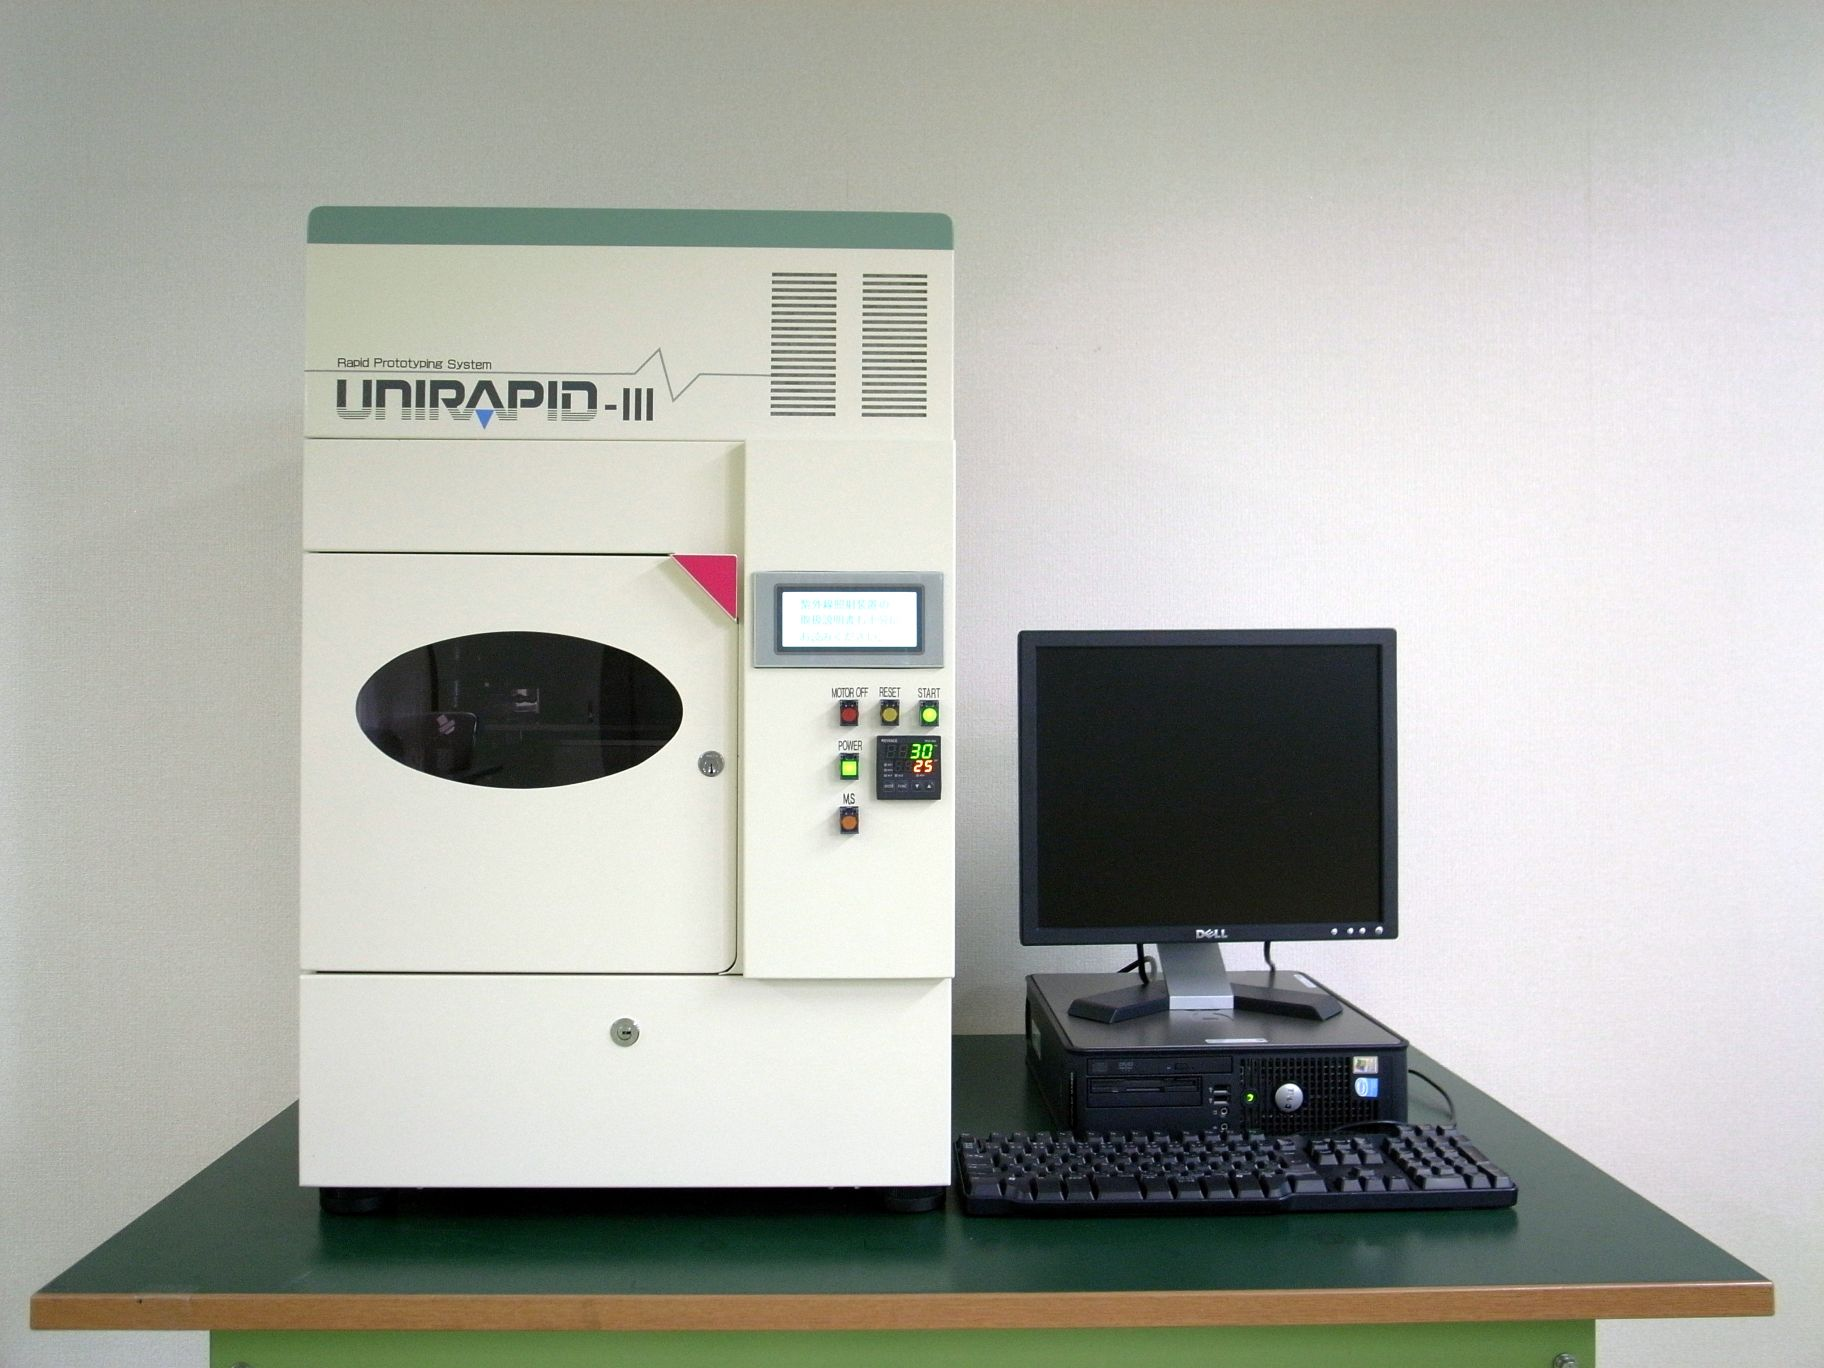 Unirapid3